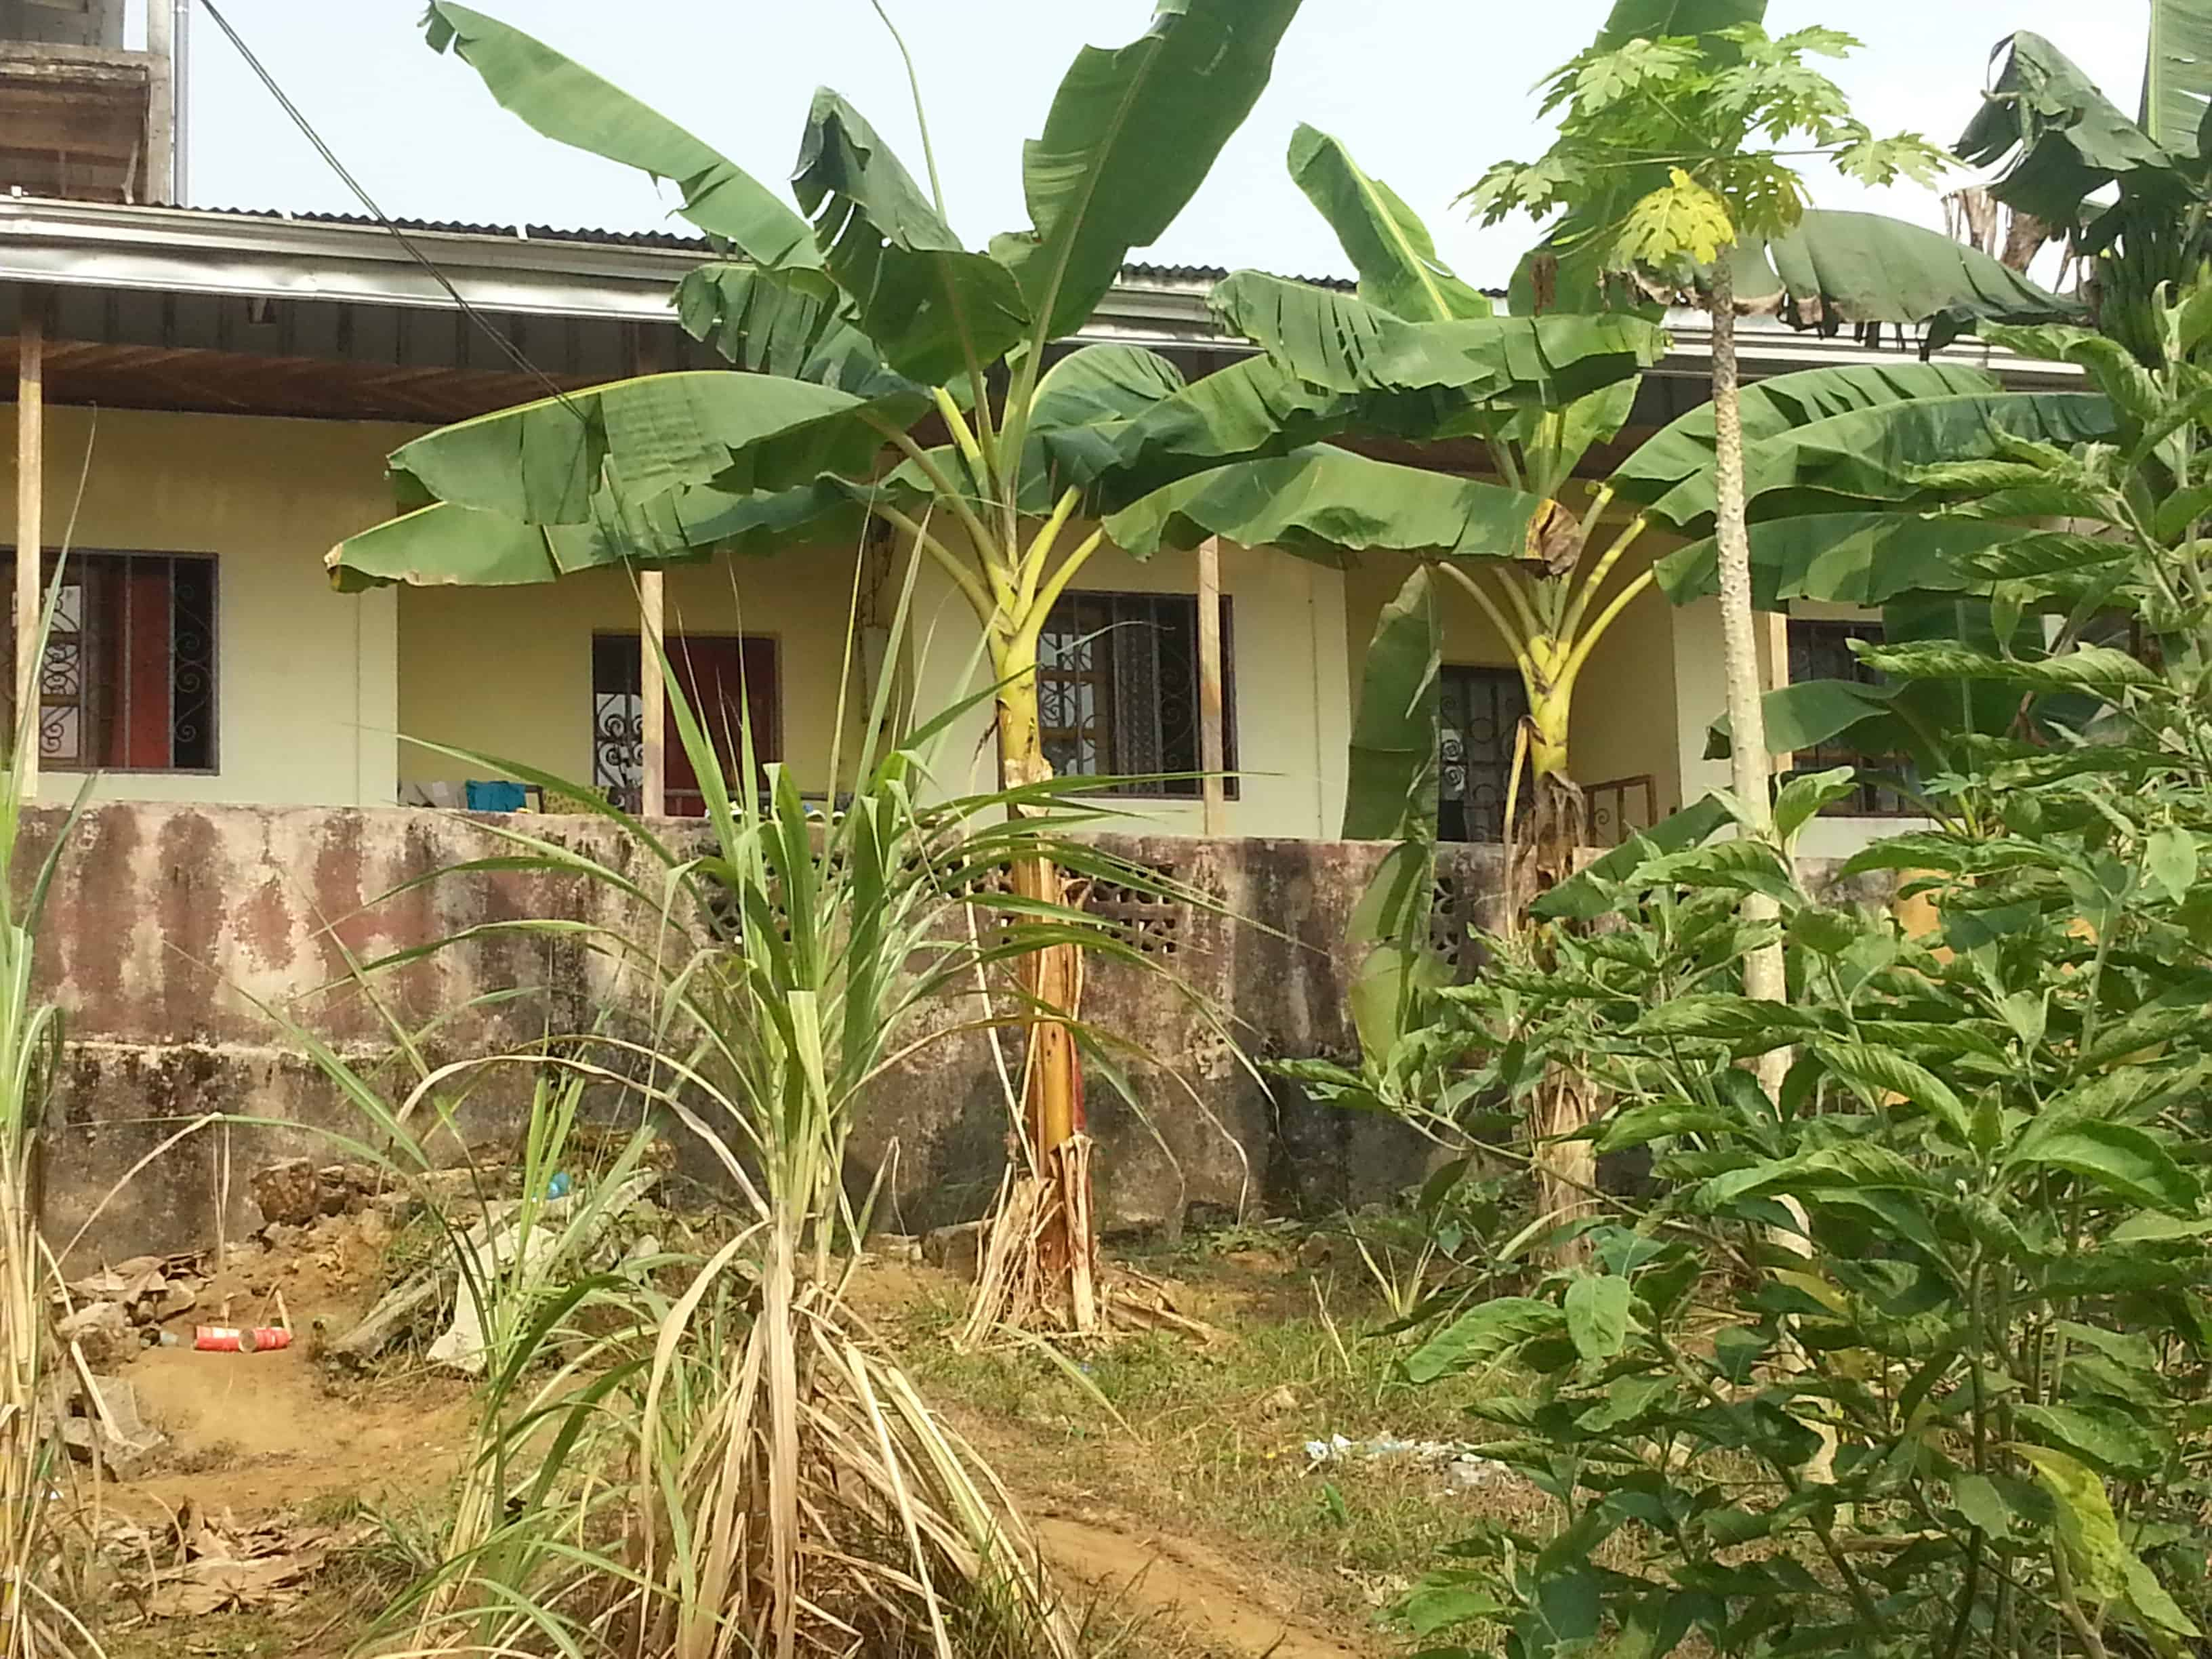 House (Wayside home) for sale - Douala, Nyala Bassa, Nkolbon - 1 living room(s), 1 bedroom(s), 1 bathroom(s) - 25 000 000 FCFA / month